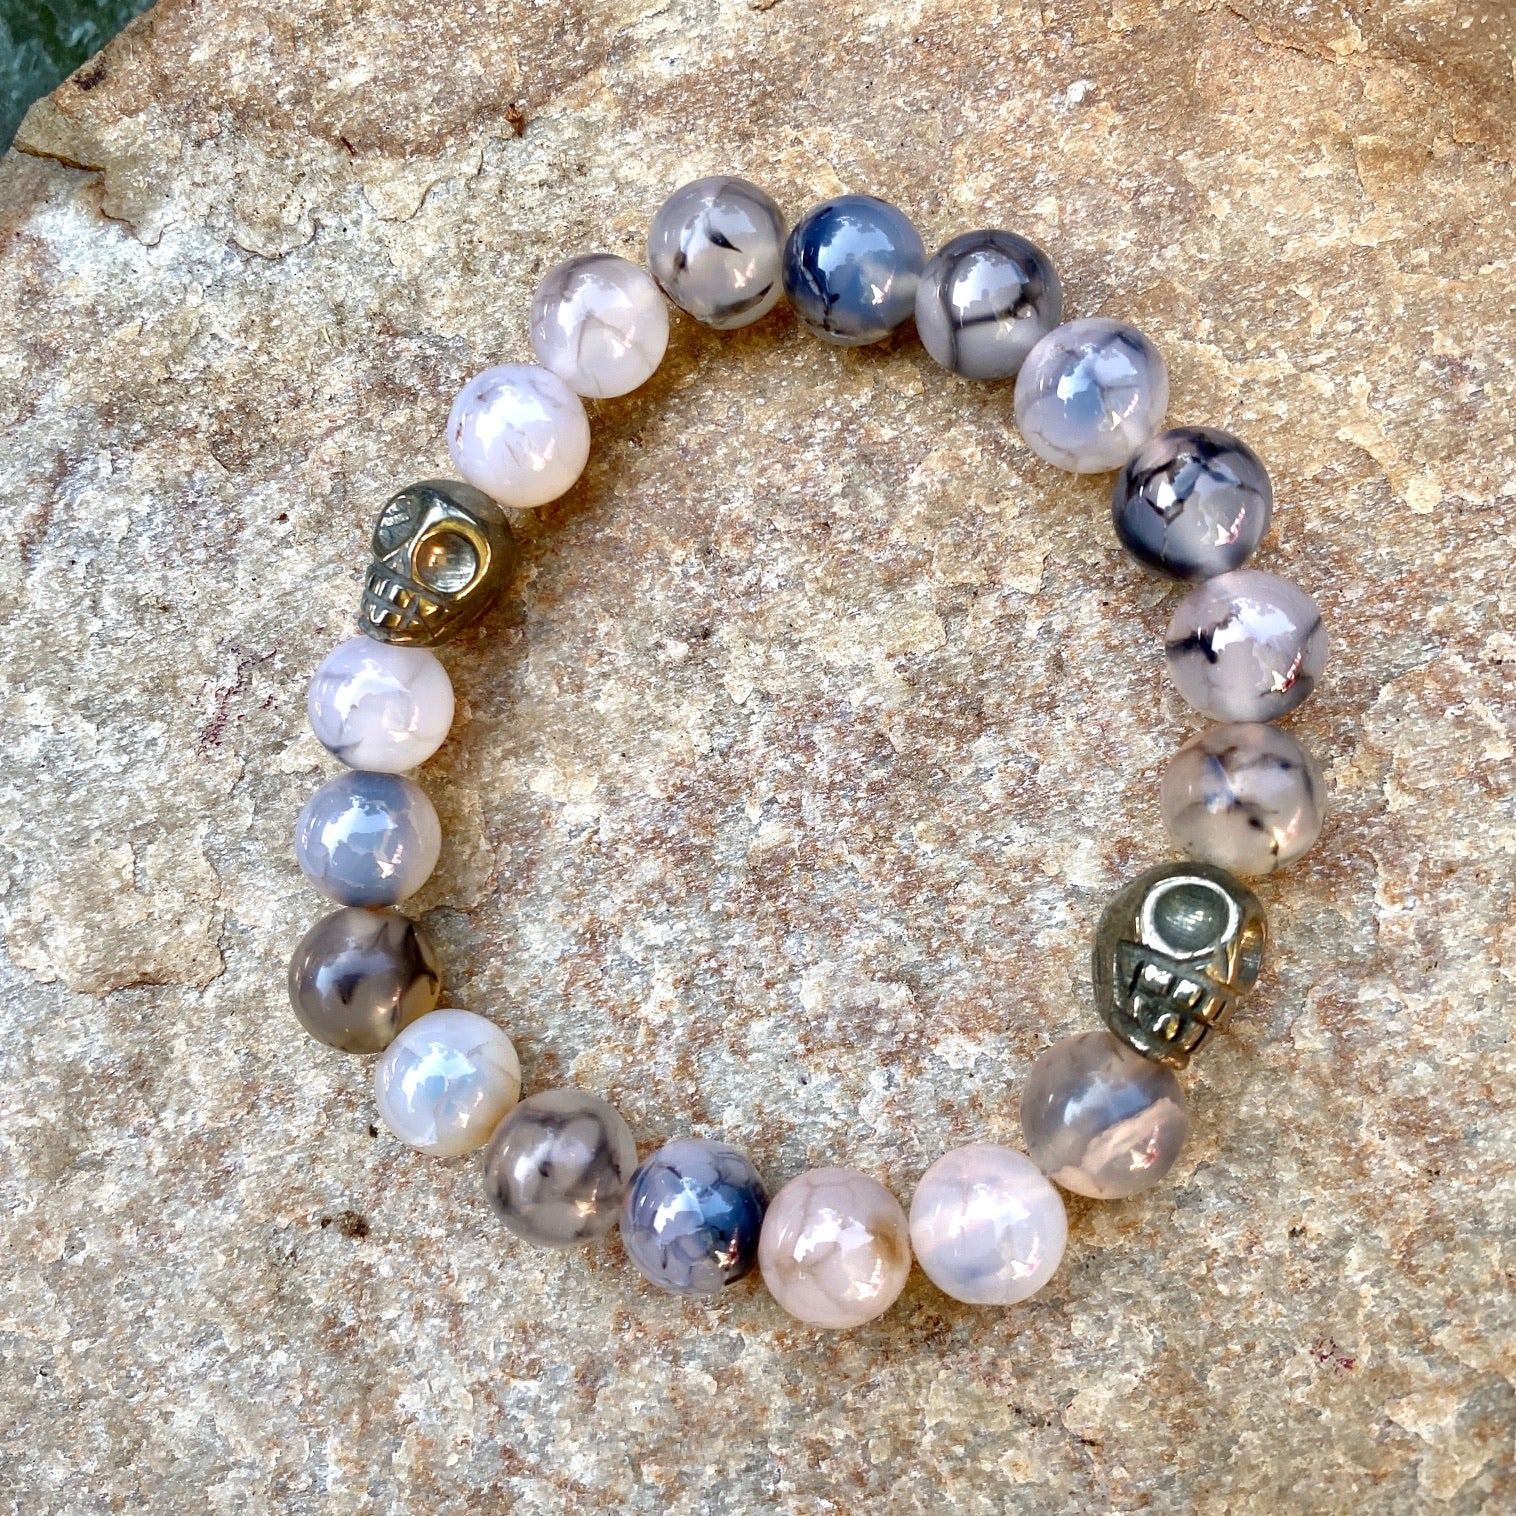 Dragon's Vein Agate and Pyrite Skulls Stretch Bracelet